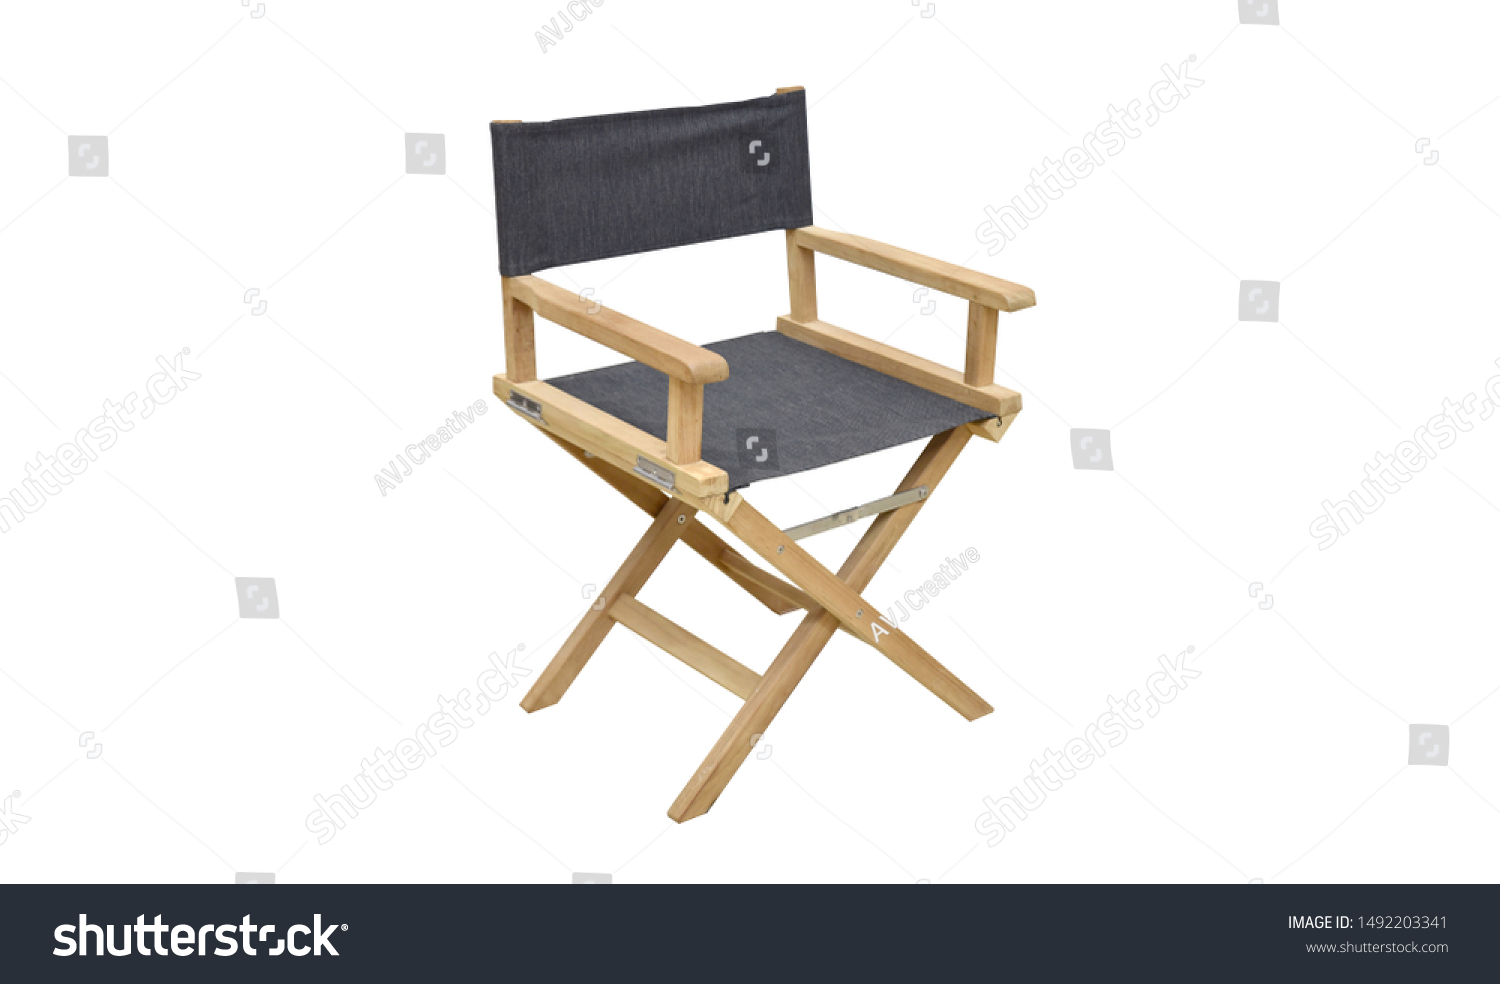 Admirable Single Folding Director Chair Furniture Isolated Stock Photo Onthecornerstone Fun Painted Chair Ideas Images Onthecornerstoneorg